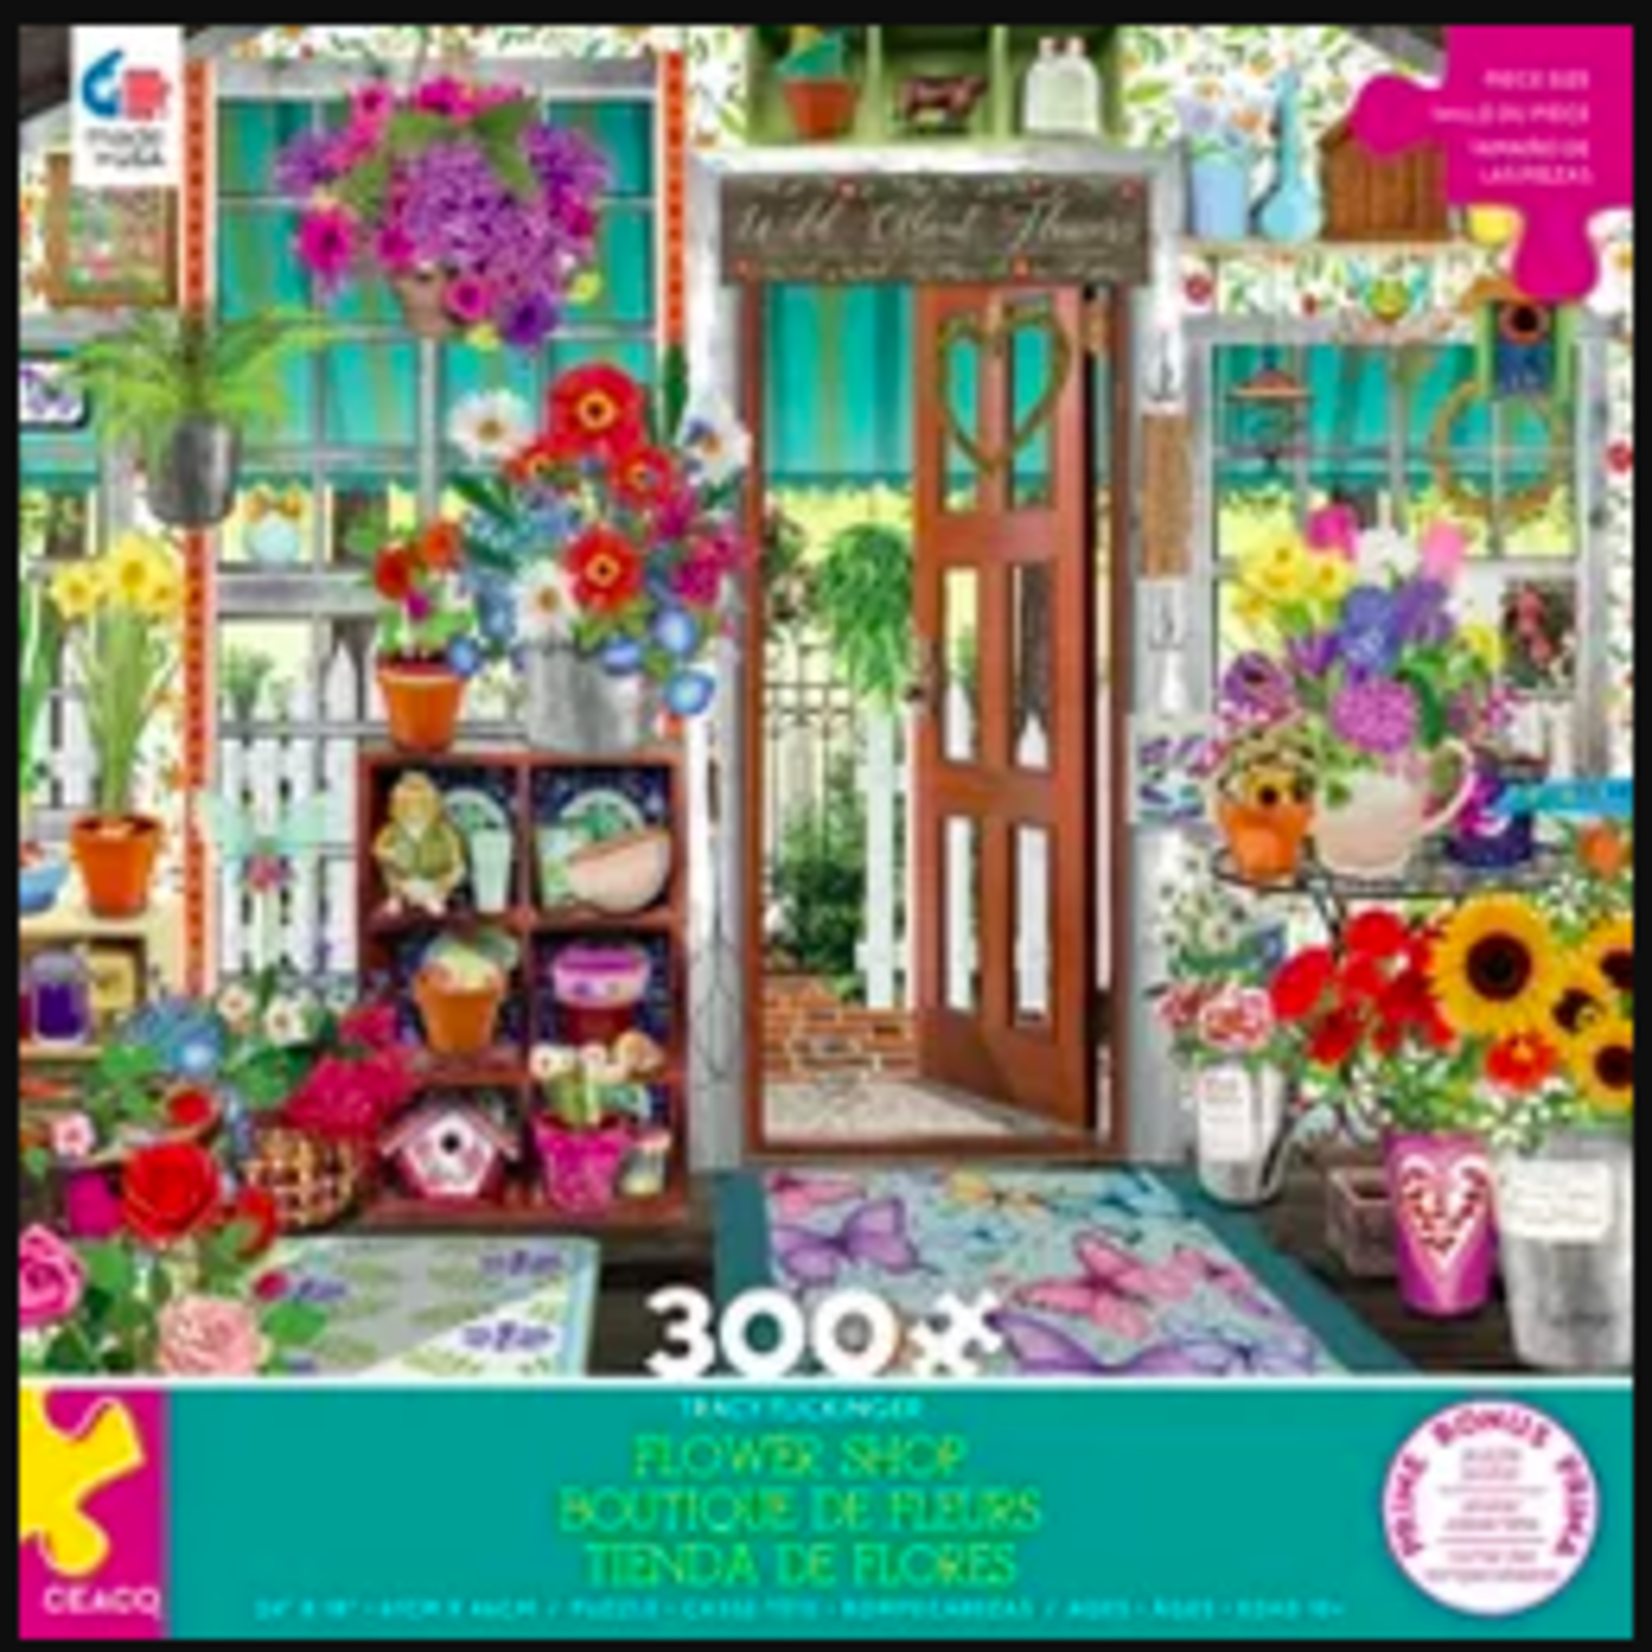 Ceaco Tracy Flickinger Flower Shop (300 pieces)